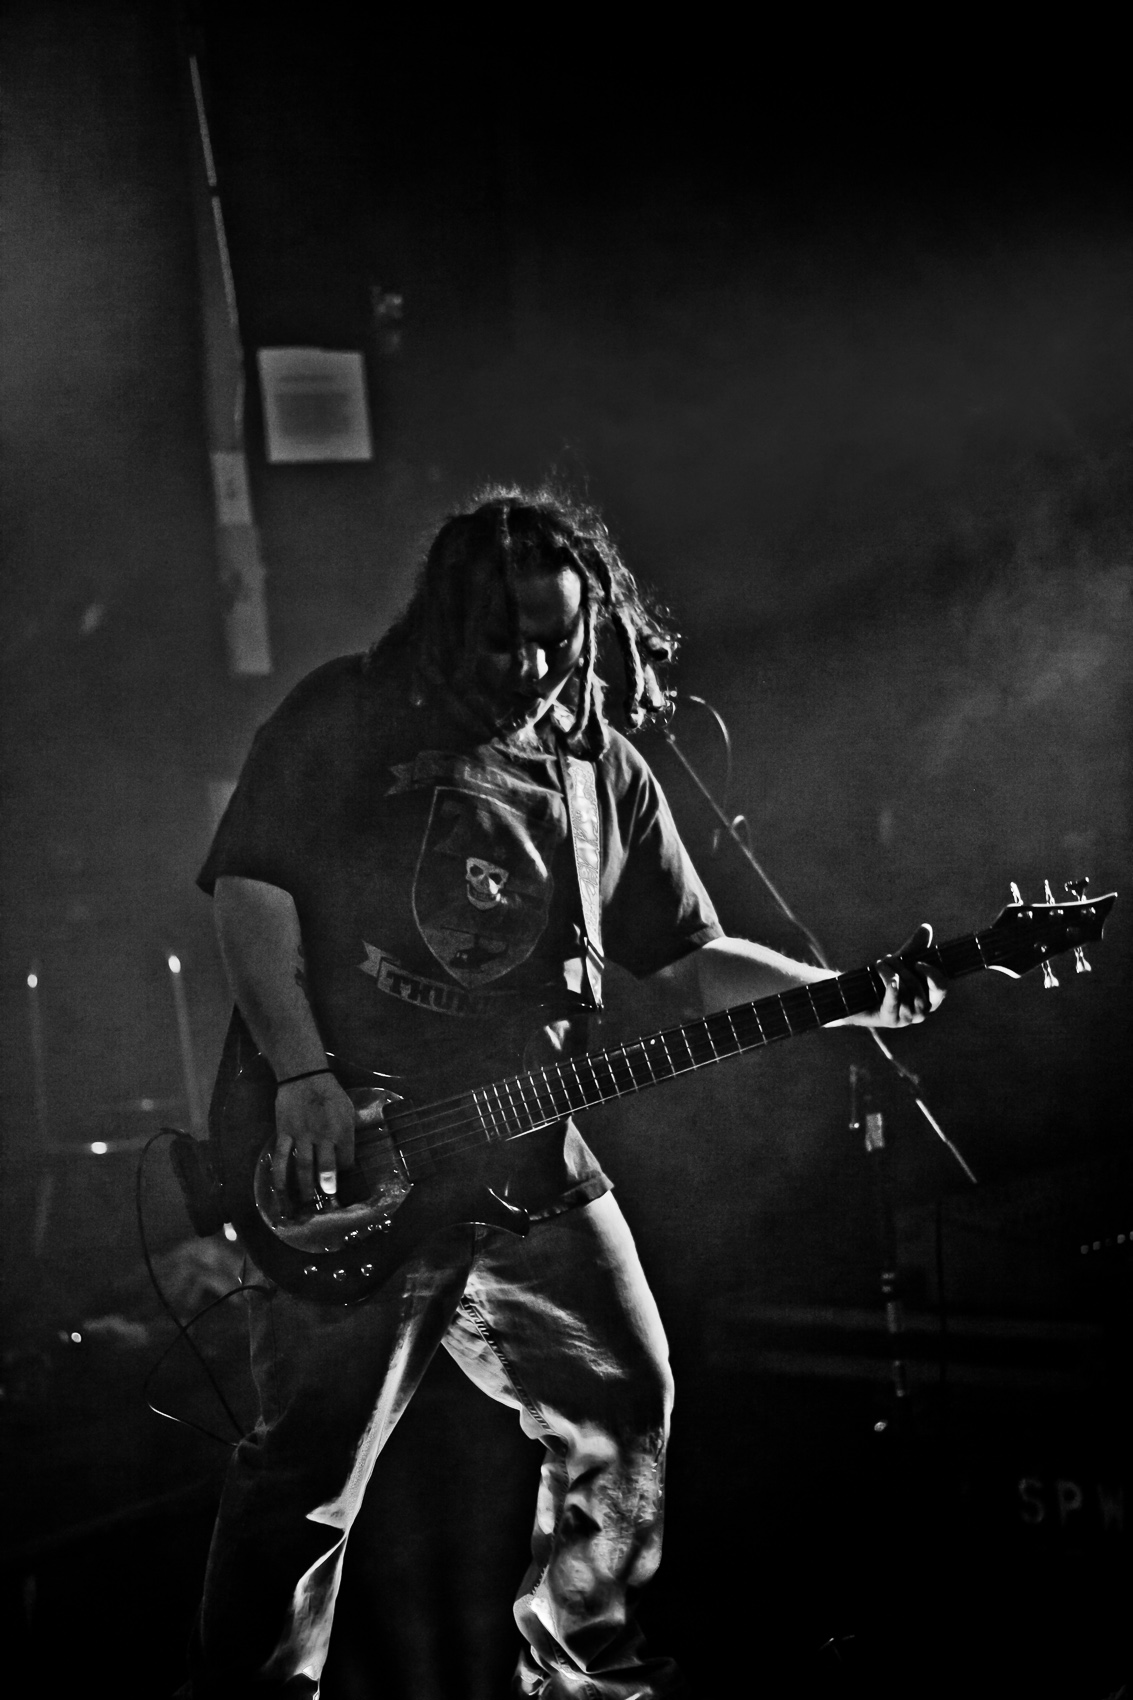 Live Concert Photograph of Throdl at The Silo Nightclub in Bernville, PA | J. Eldon Zimmerman Photography | Lancaster, PA Music Industry Photographer